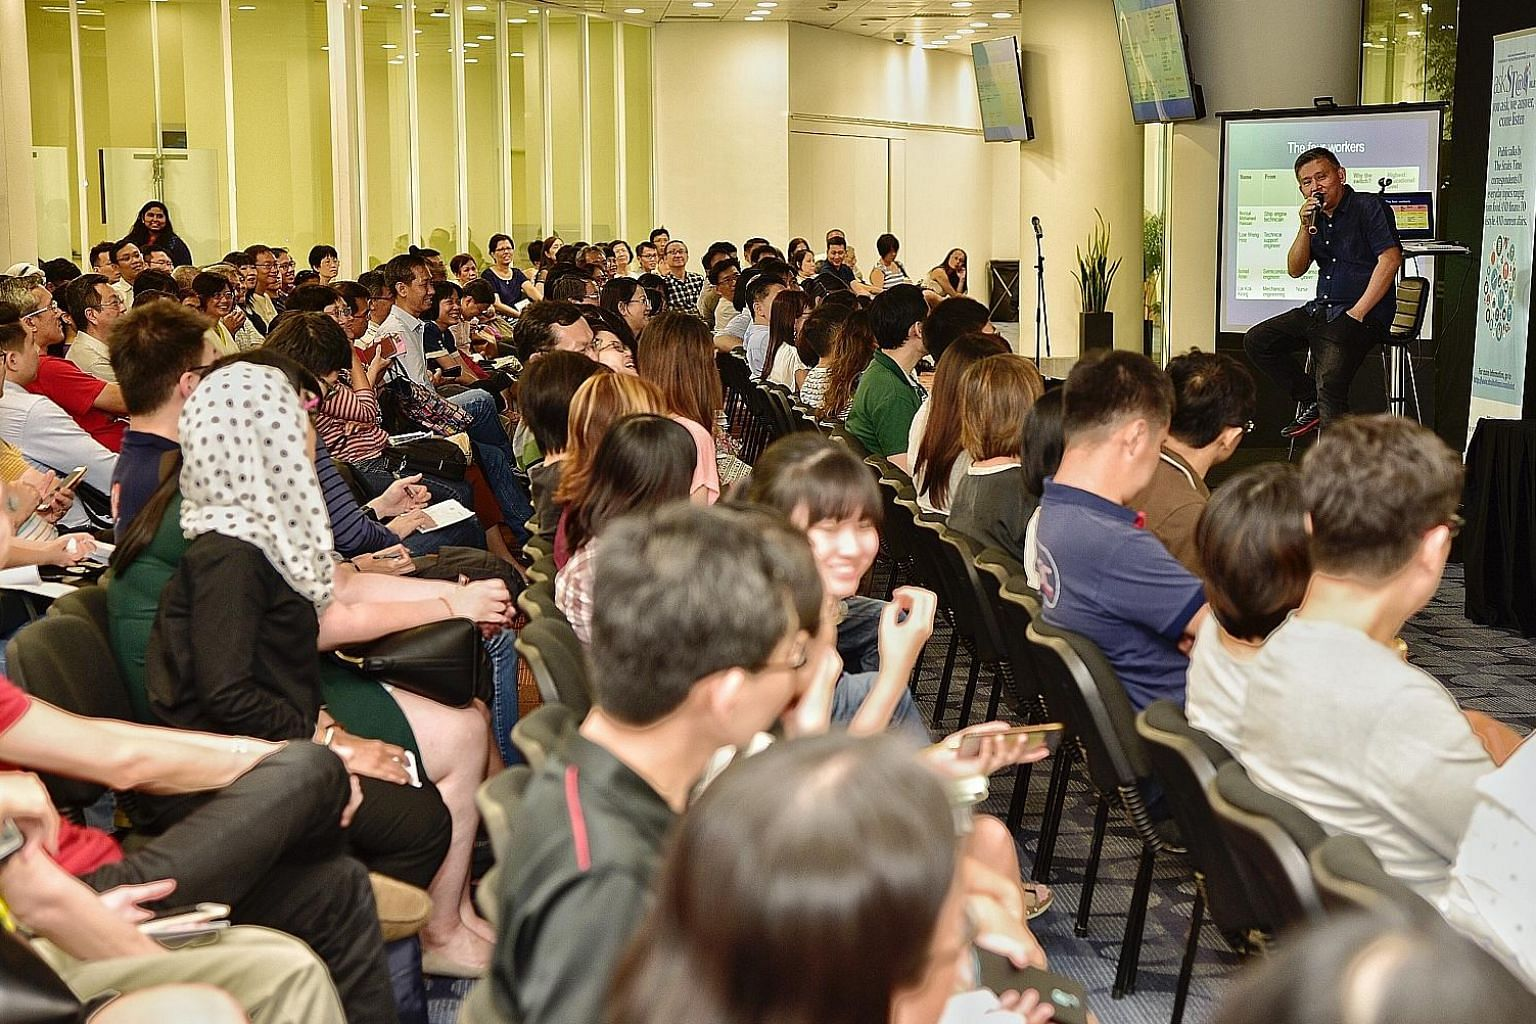 Some 350 people turned up for a talk by ST senior manpower correspondent Toh Yong Chuan on preparing for the challenges when making a mid-career switch. Over 2,300 people also tuned in to the session via a live stream.